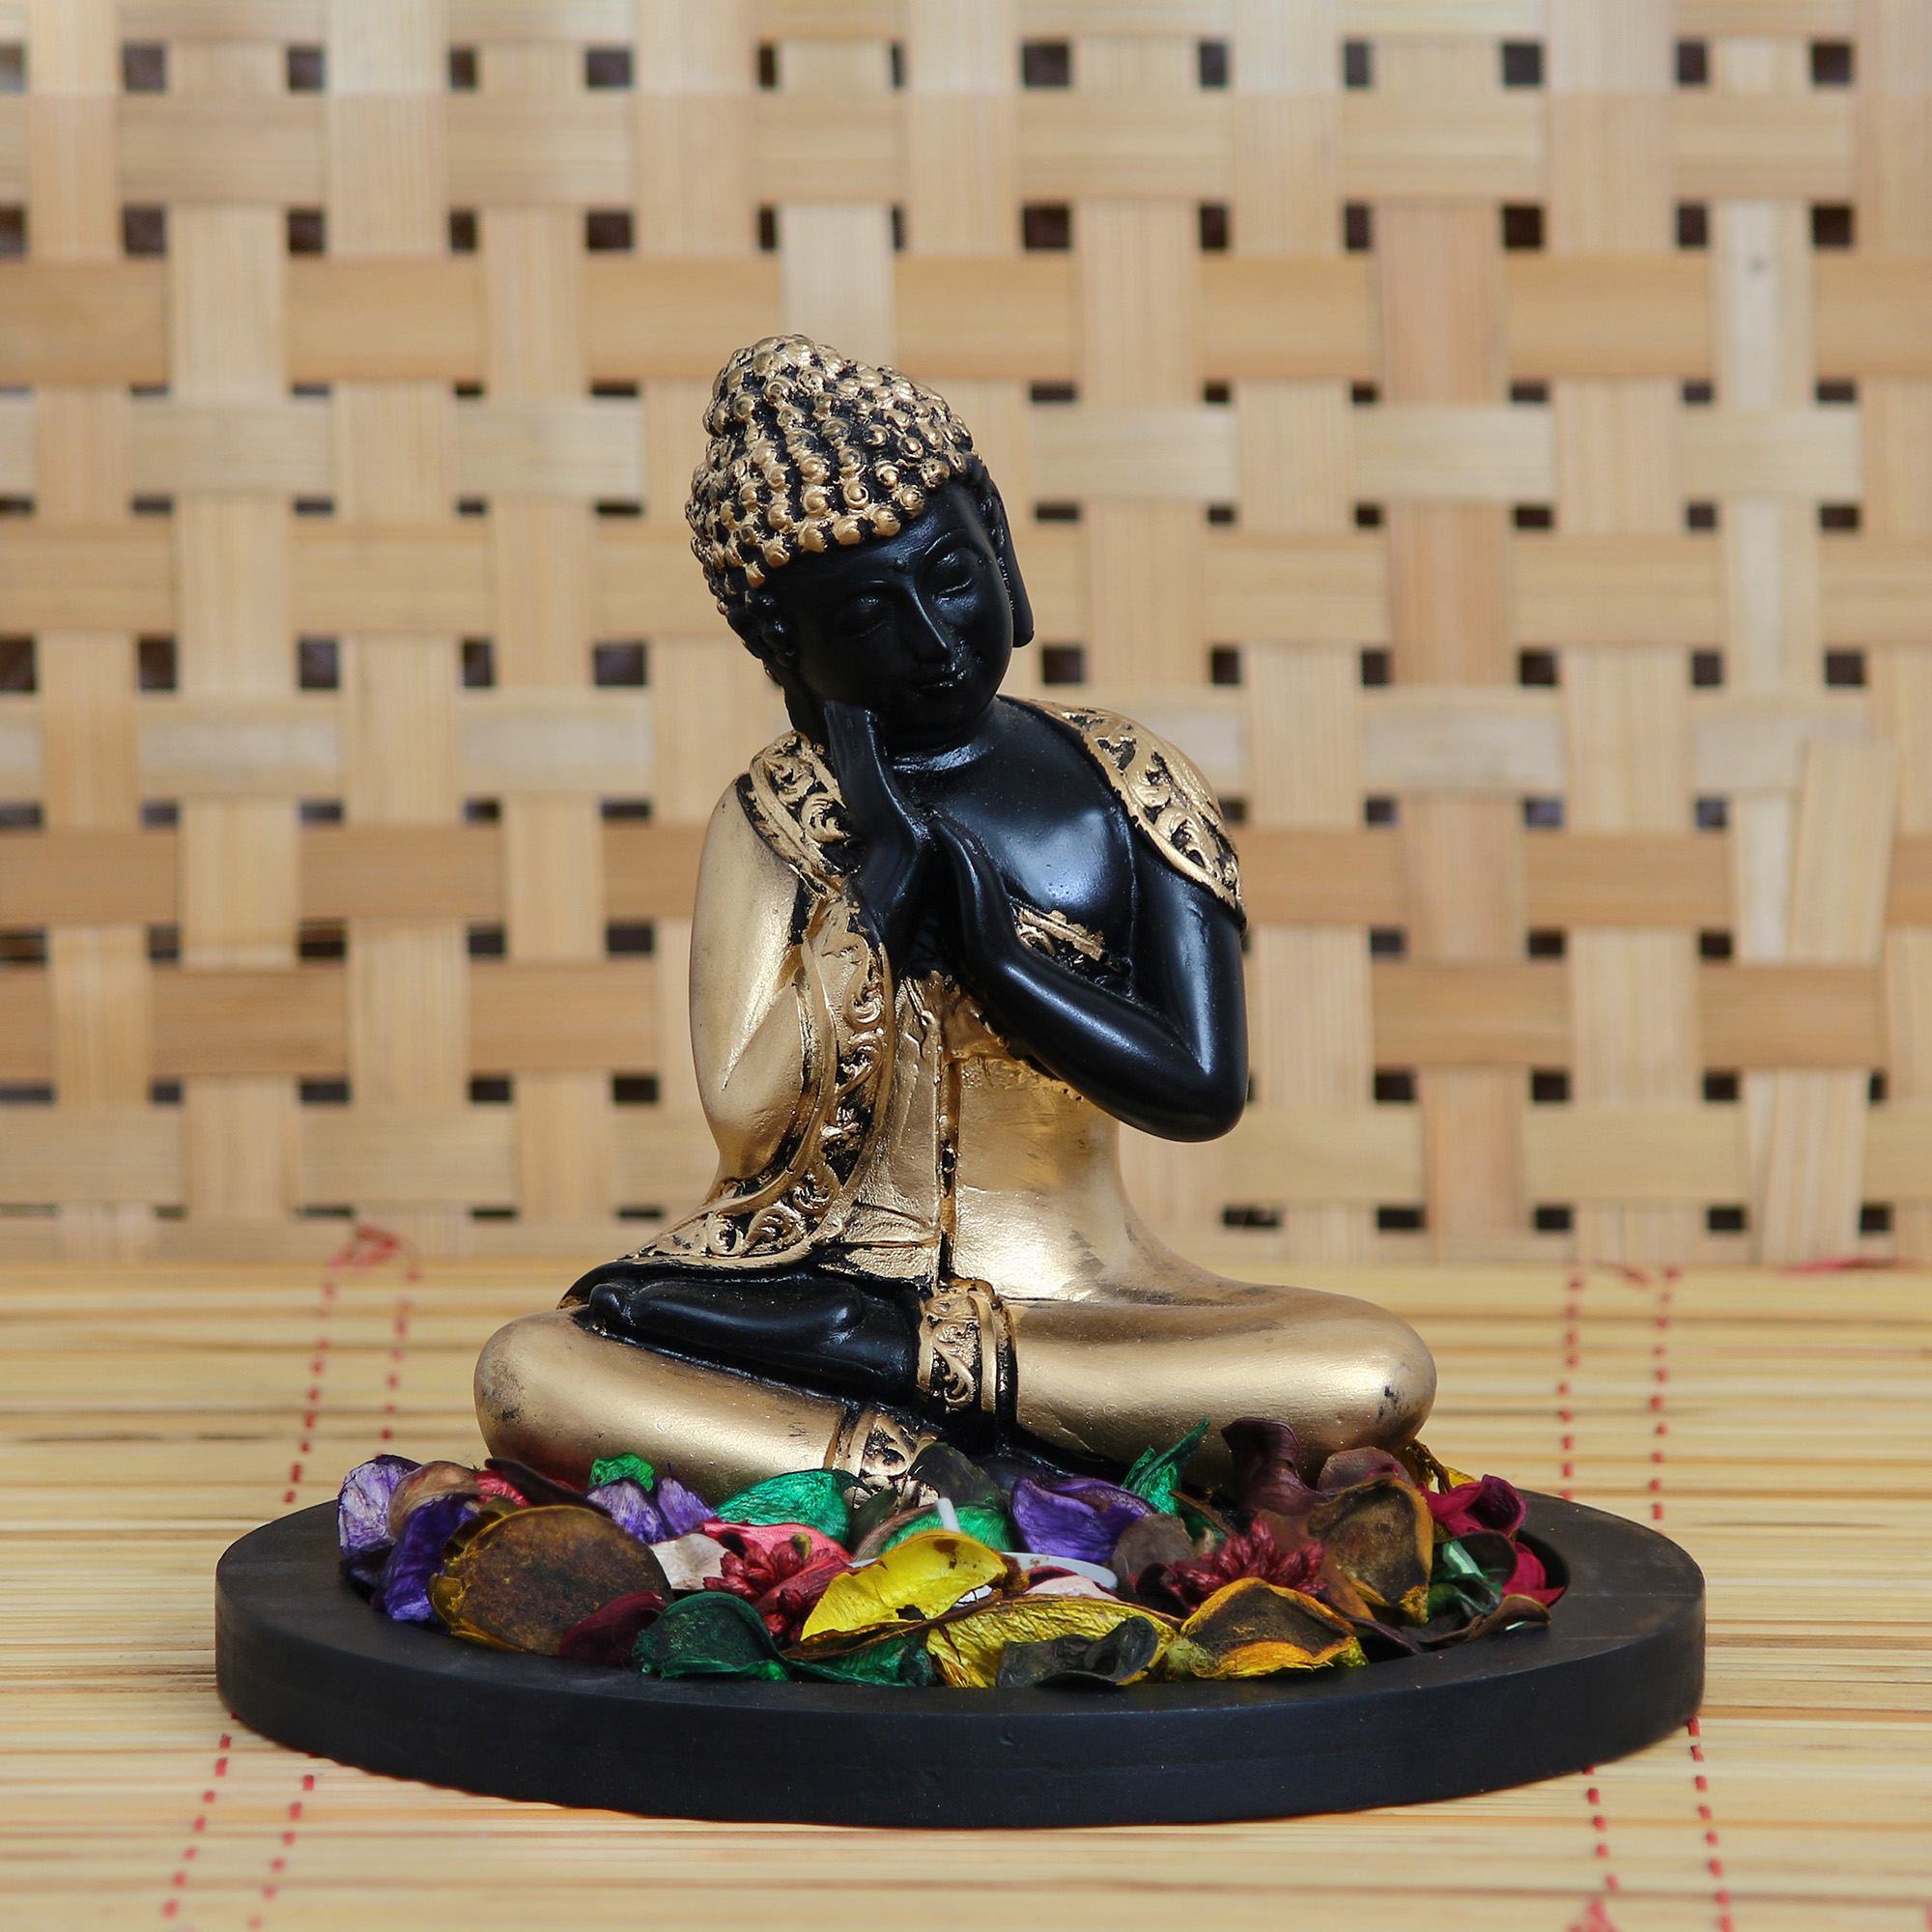 Golden Resting Buddha Decorative Showpiece with Wooden Base, Fragranced Petals and Tealight Indian Home Decor